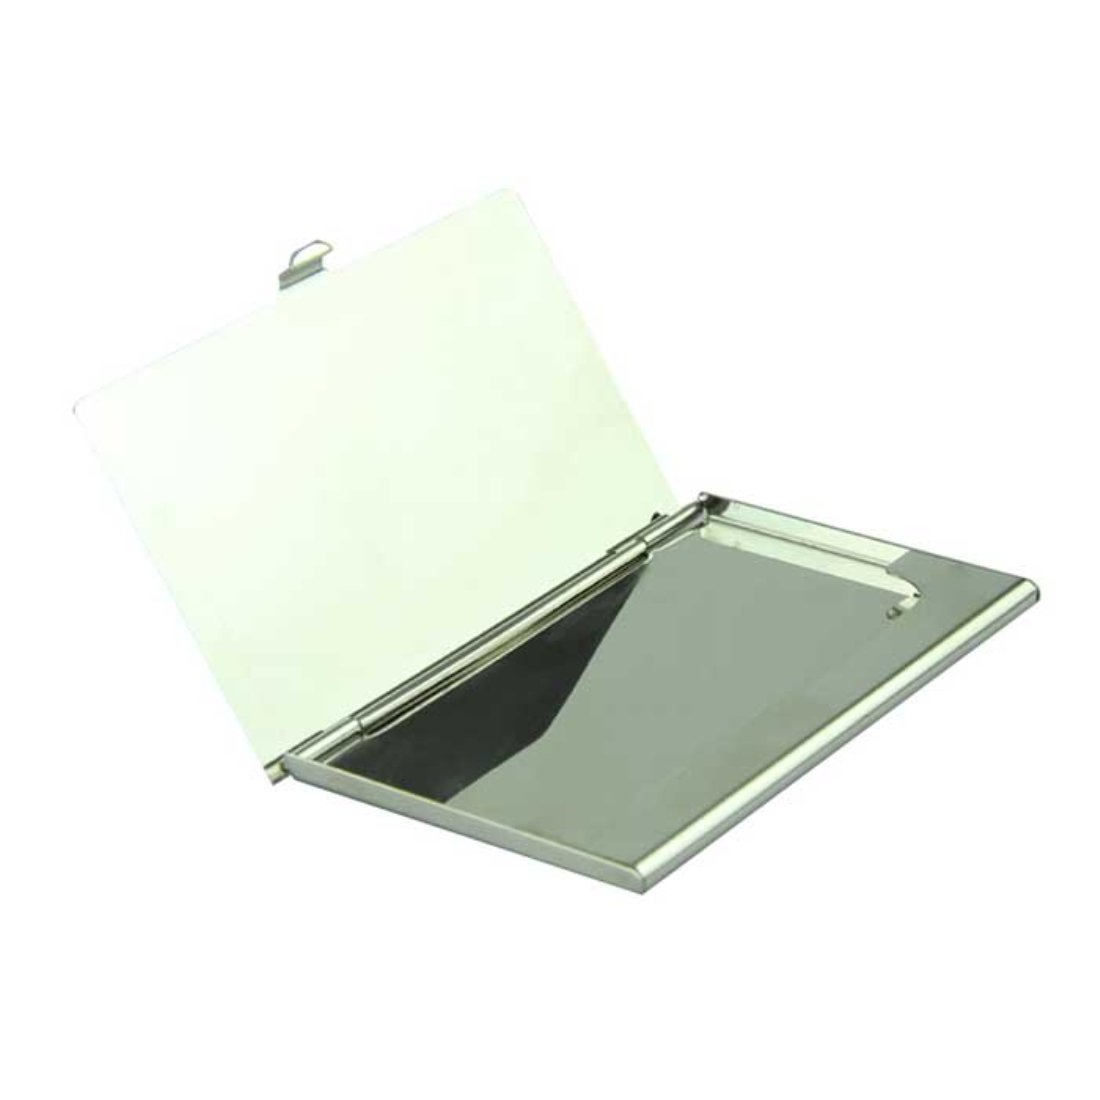 Voberry Voberry Silver Business Card Holder - Flip Style - Metal Business Card Holder Clip Flip Holder ID Card Holder